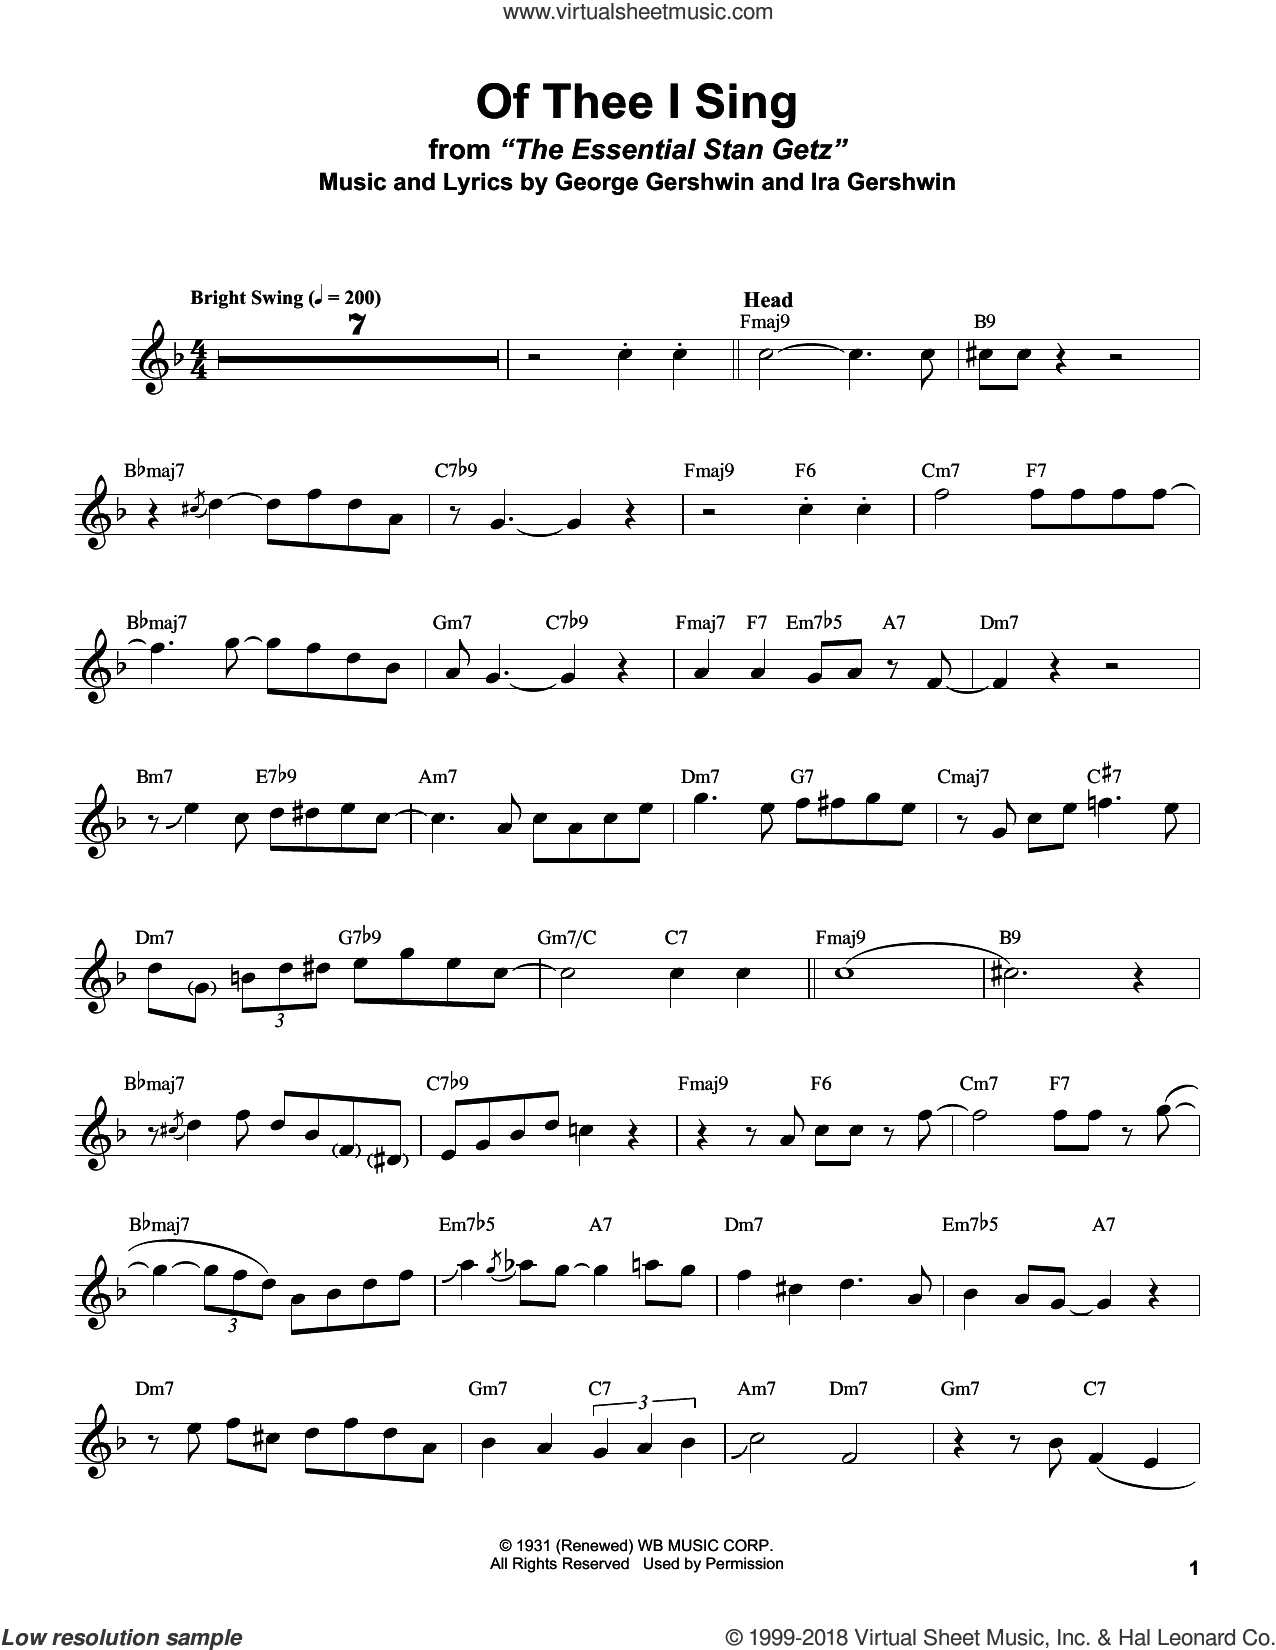 Of Thee I Sing sheet music for tenor saxophone solo (transcription) by Stan Getz, George Gershwin and Ira Gershwin, intermediate tenor saxophone (transcription)